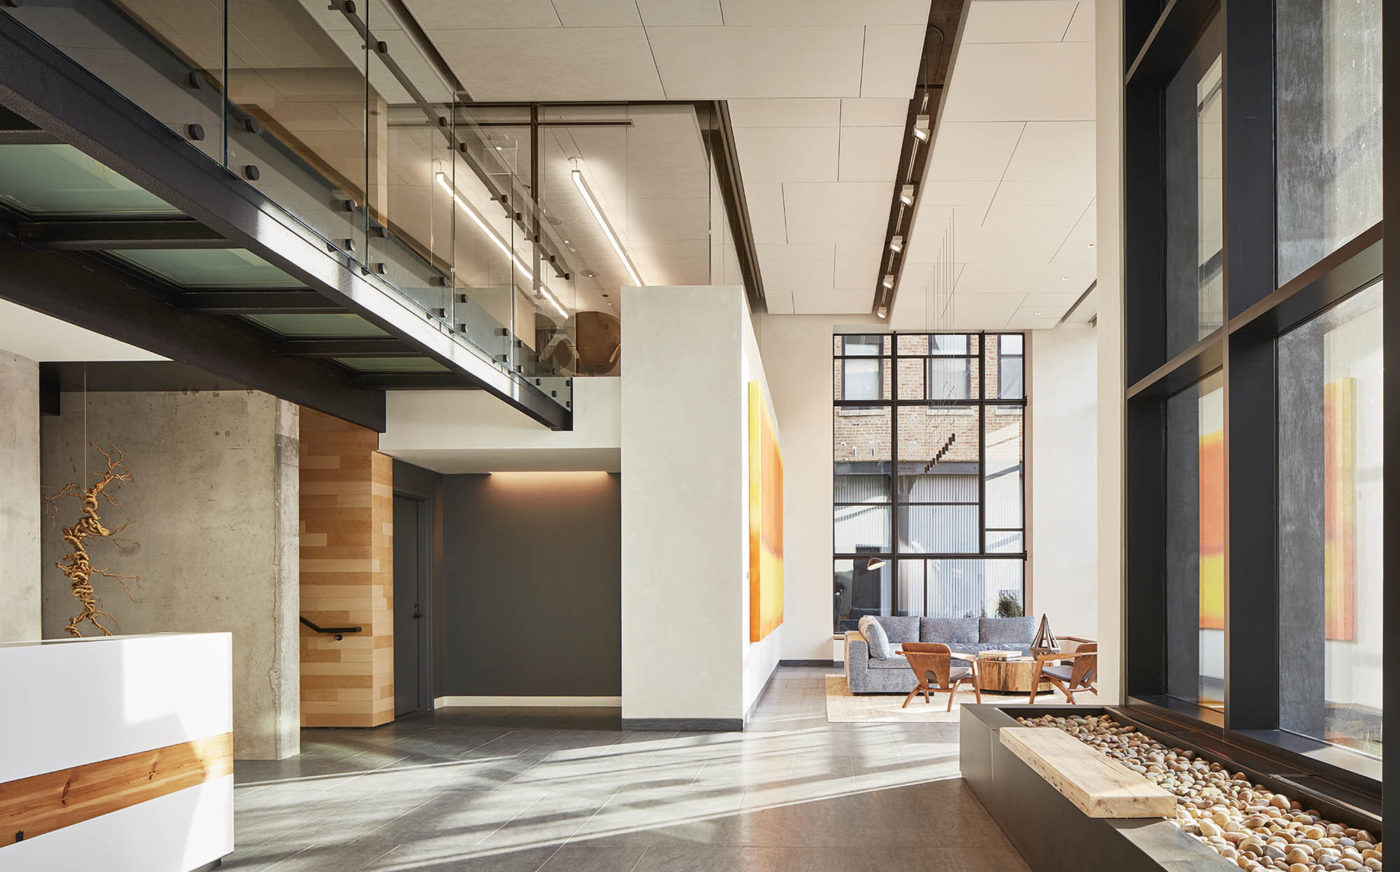 light-filled lobby with expansive windows